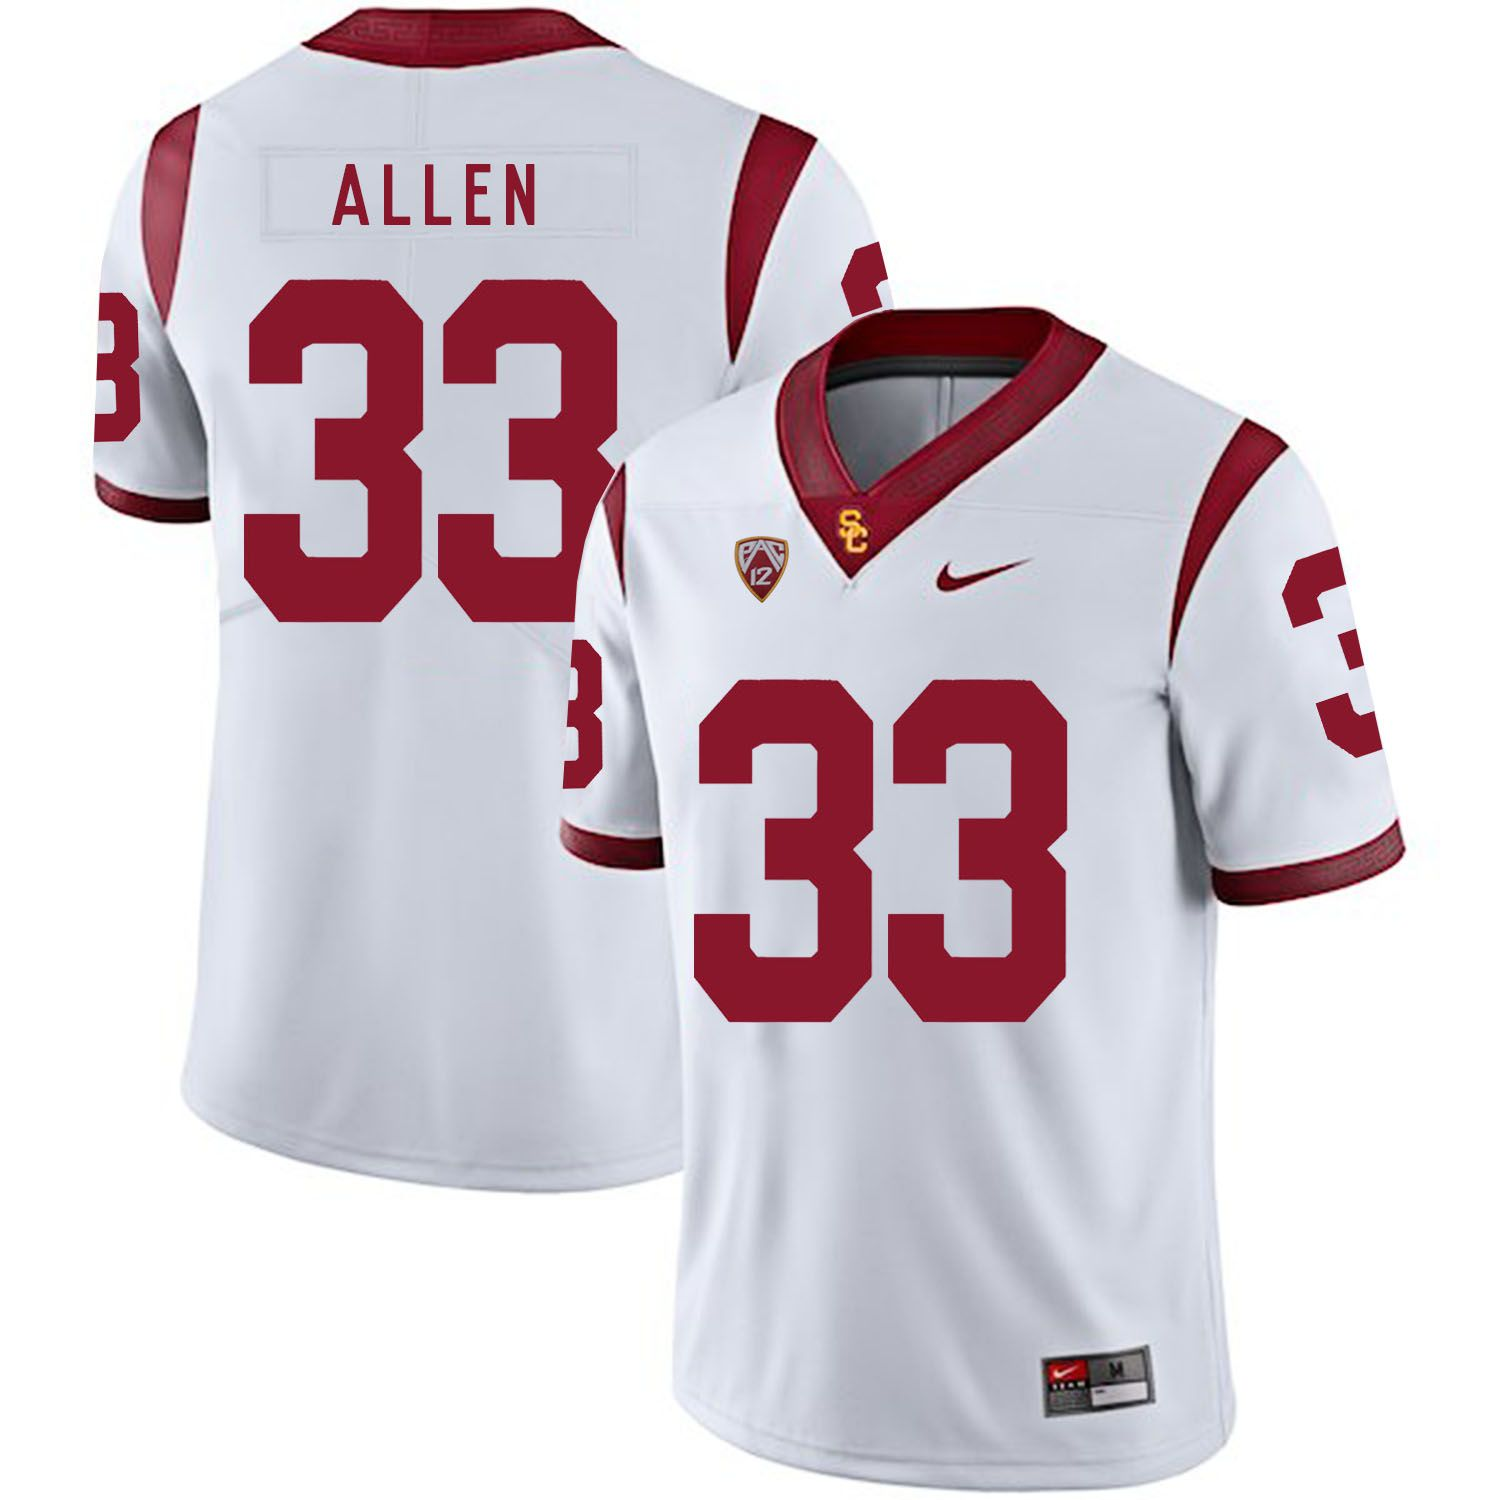 Men USC Trojans 33 Allen White Customized NCAA Jerseys